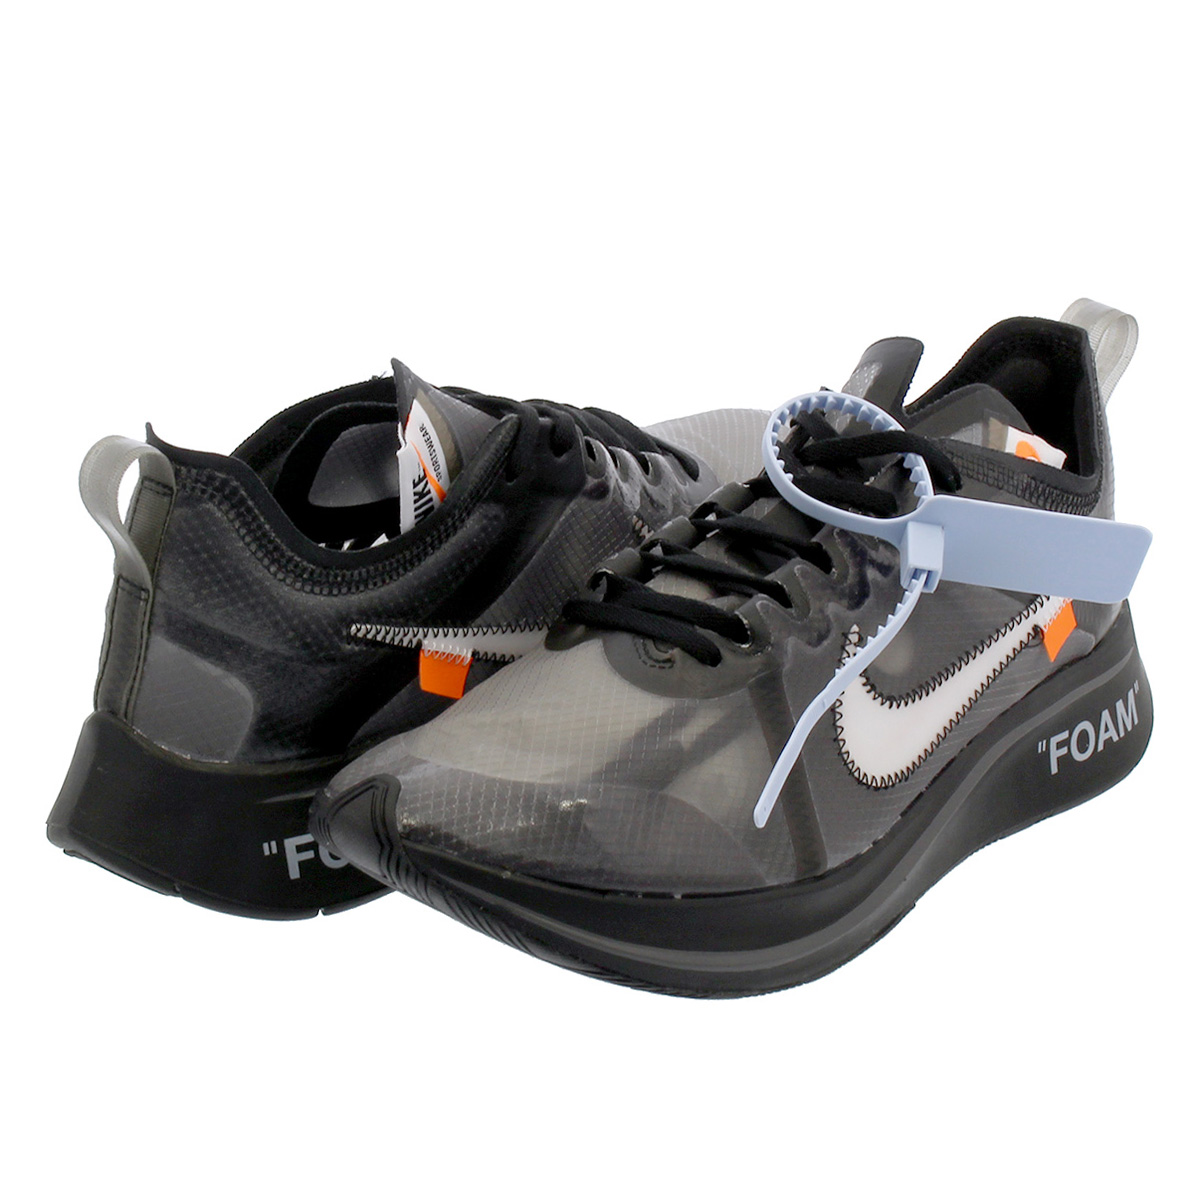 NIKE ZOOM FLY SP【THE TEN】 【OFF-WHITE】 ナイキ ズーム フライ SP オフ ホワイト BLACK/WHITE/CONE aj4588-001